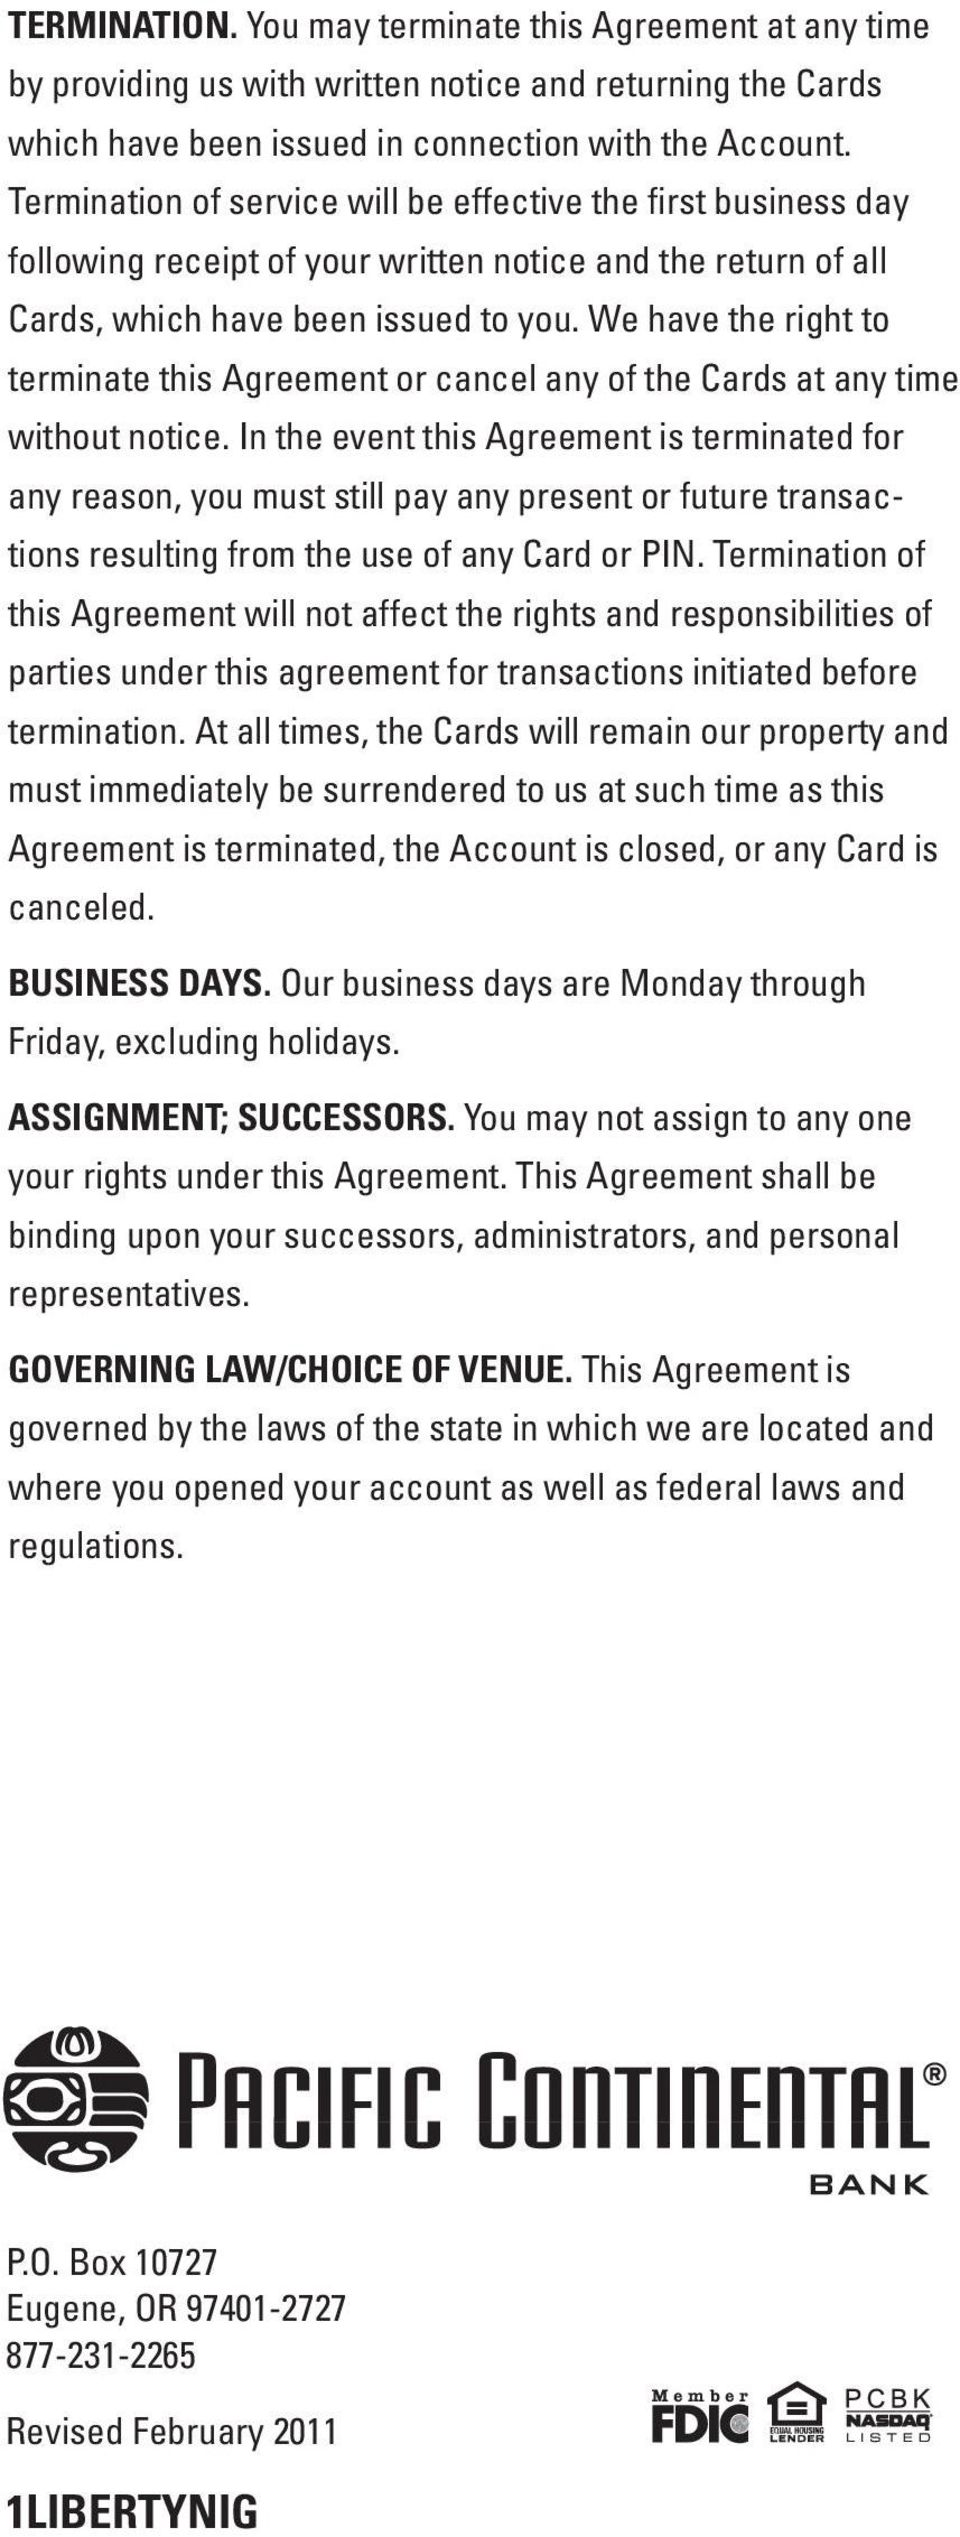 We have the right to terminate this Agreement or cancel any of the Cards at any time without notice.